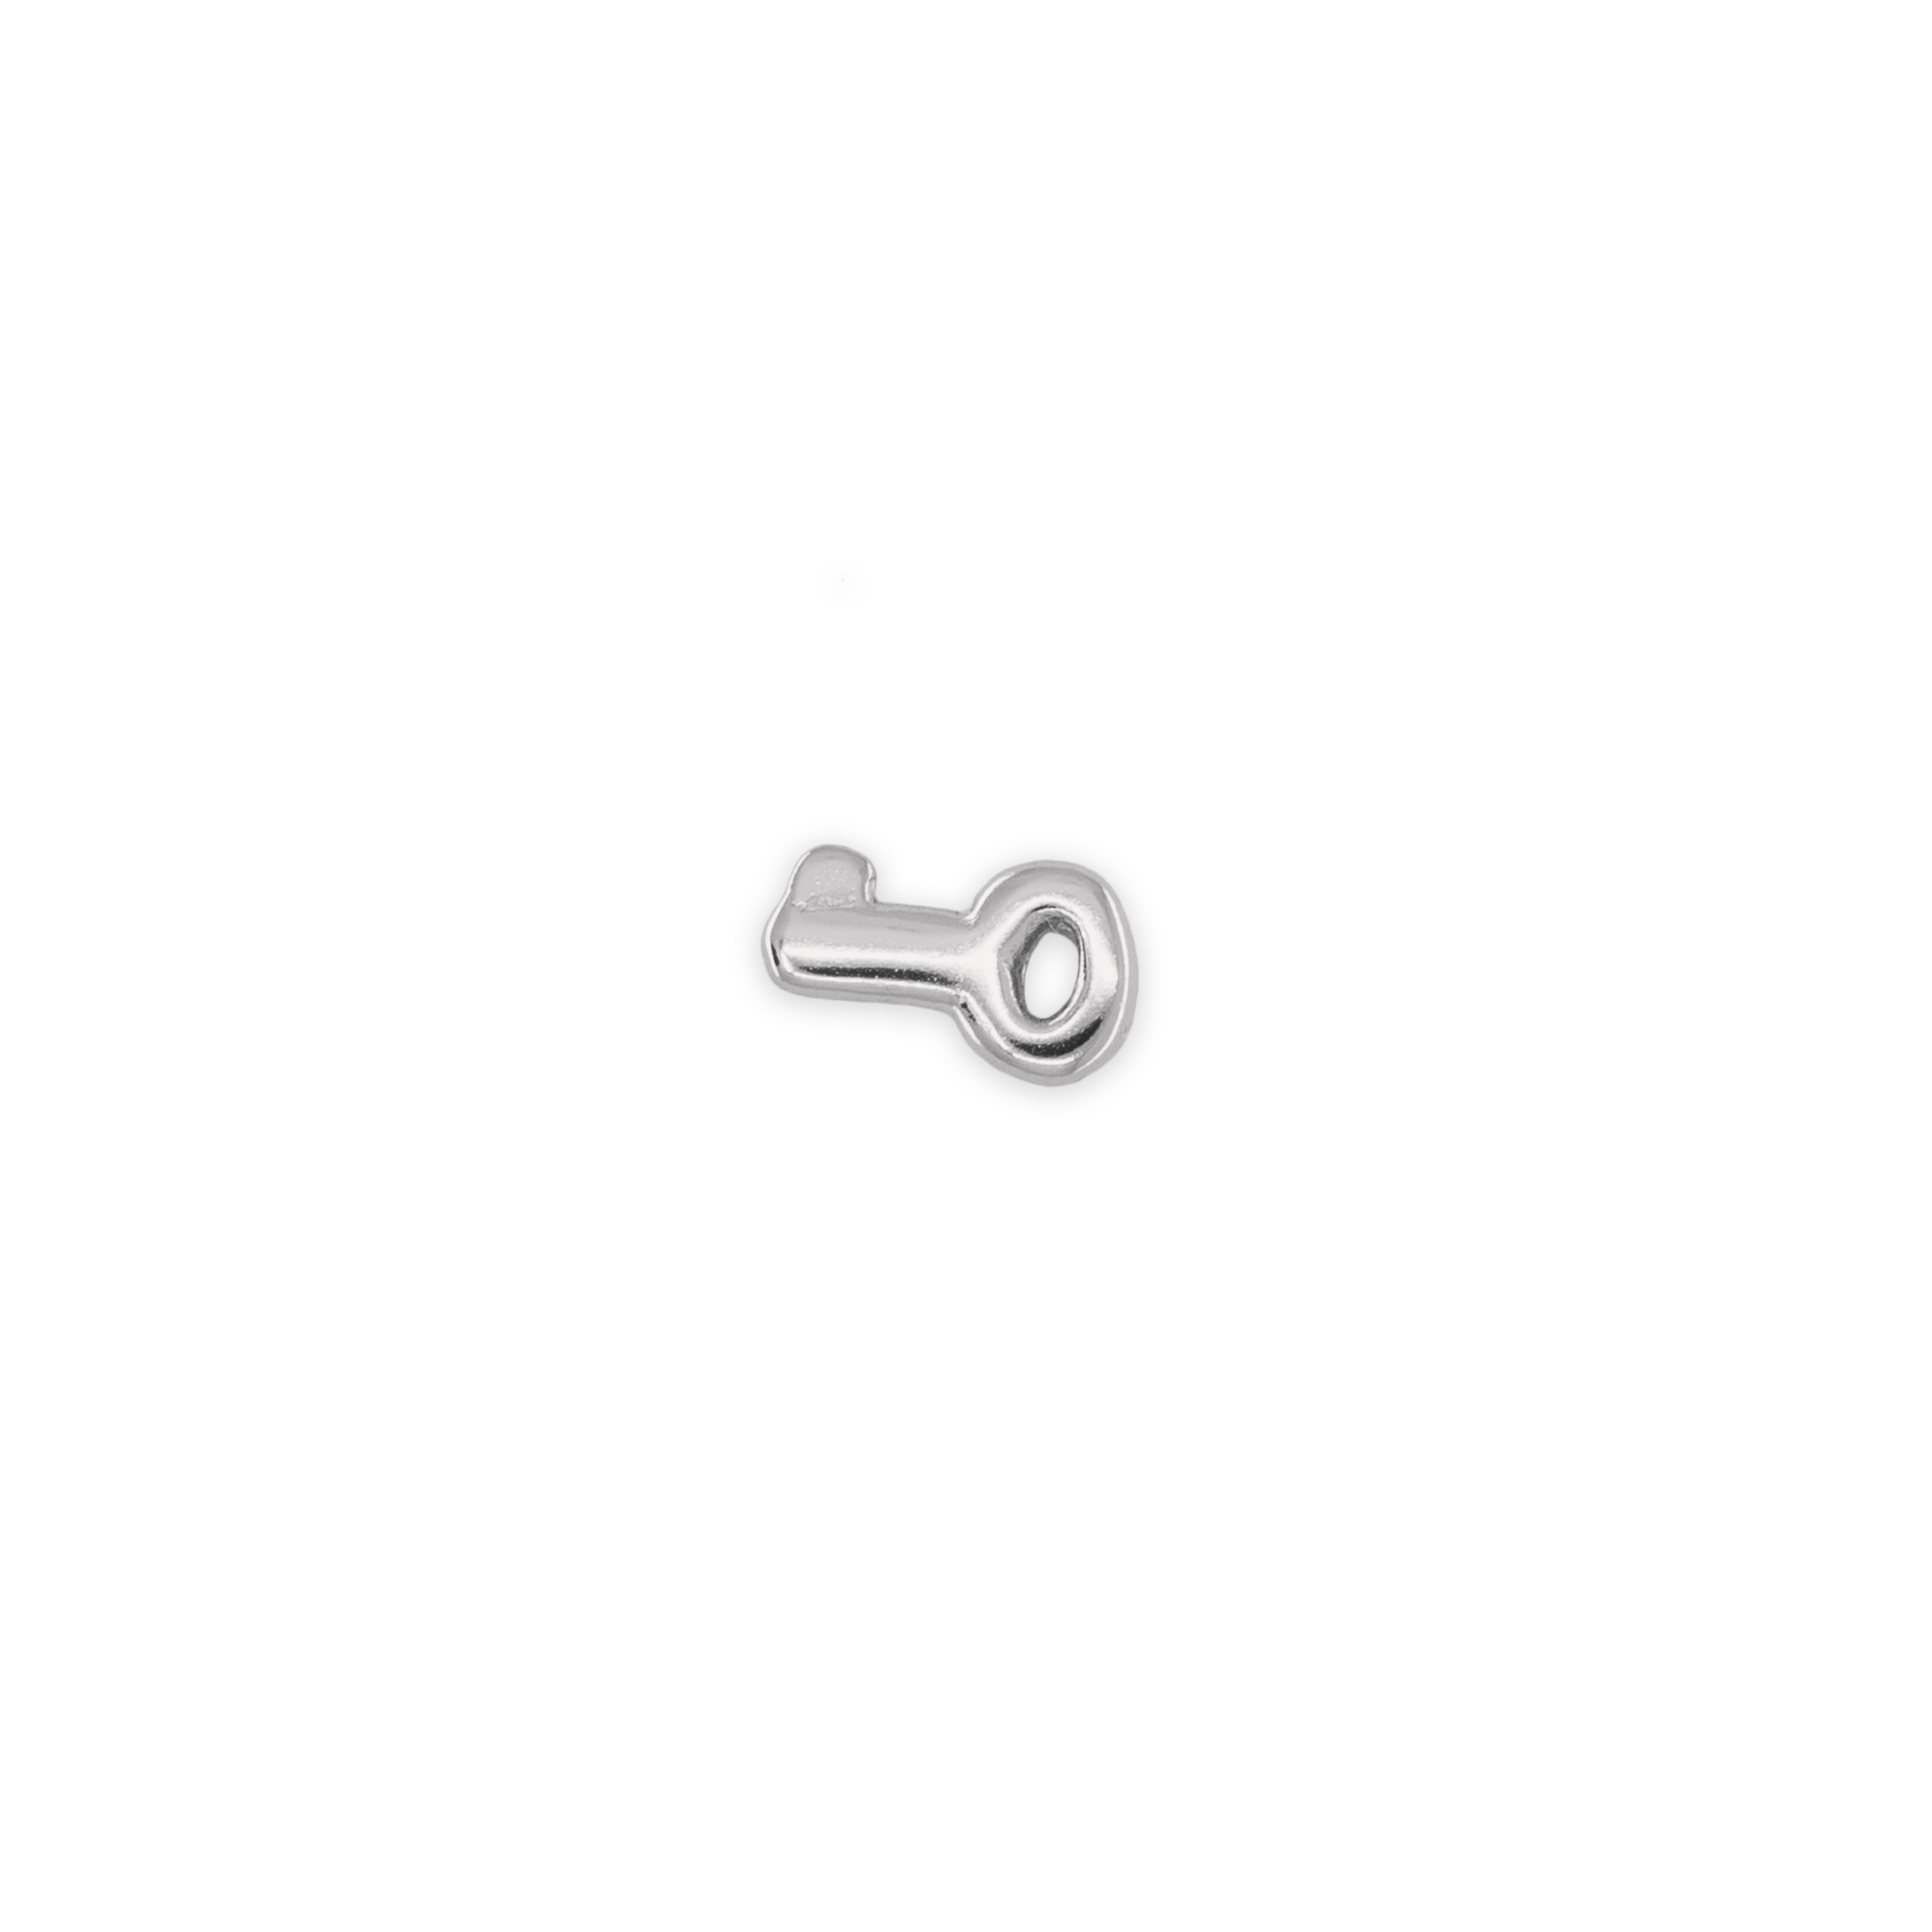 This silver stud is in the shape of a key. color:silver